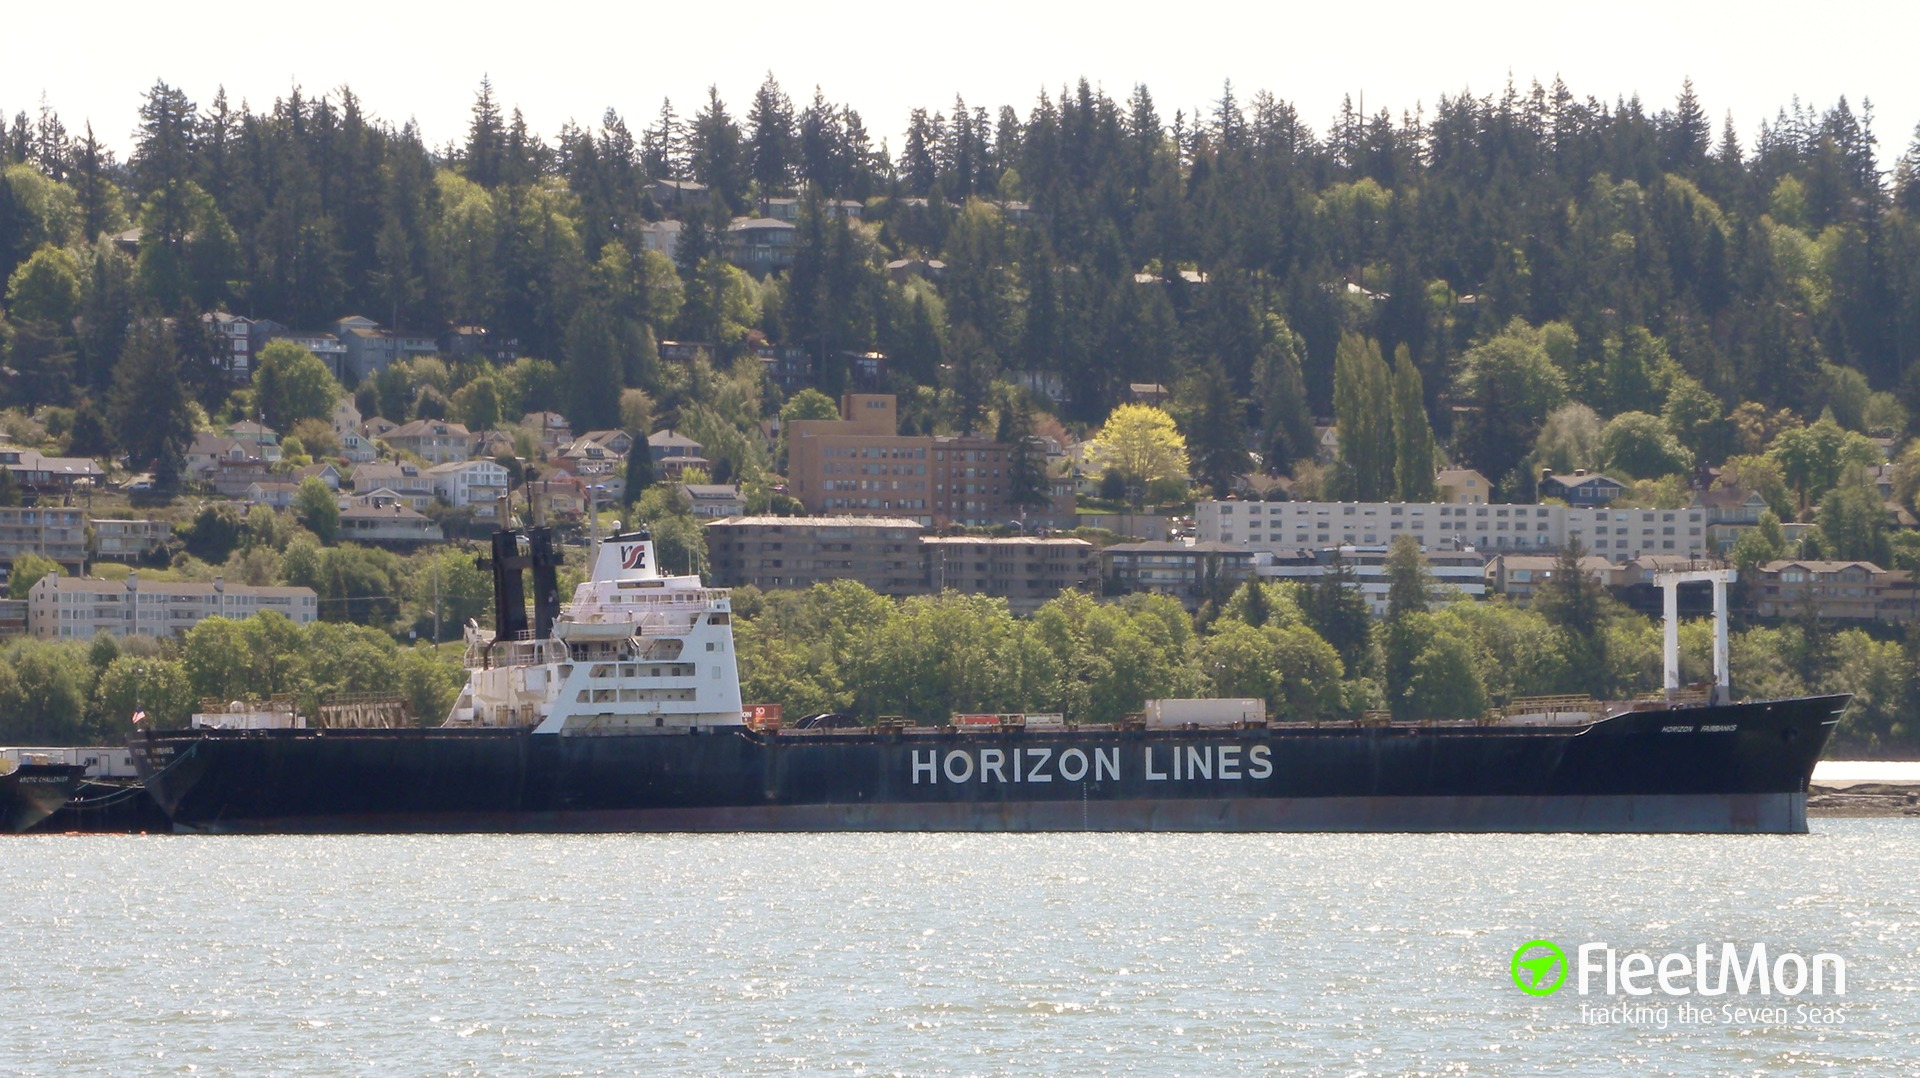 Container ship Horizon Fairbanks accident, Bellingham, Washington